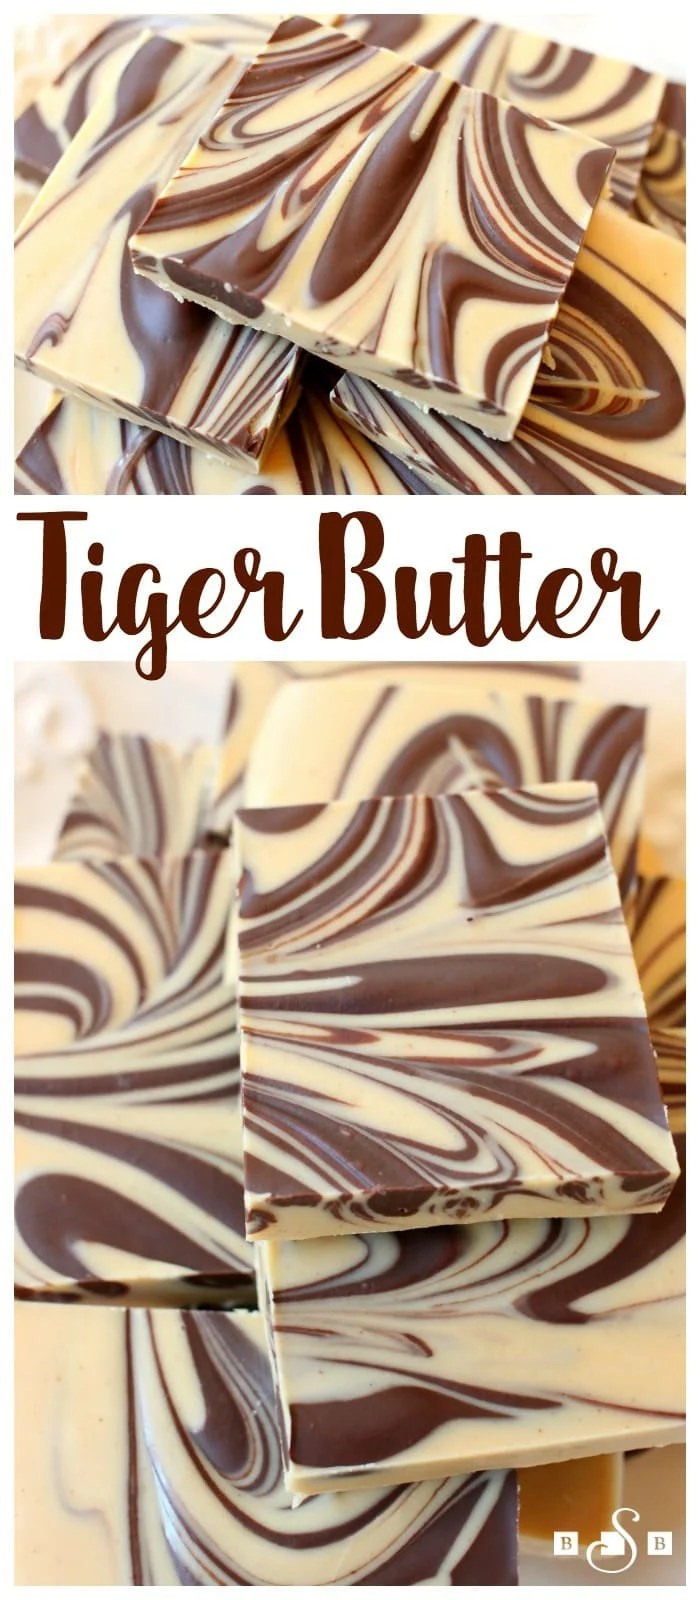 Tiger Butter made from 3 ingredients that are melted & swirled together. Gorgeous #holiday candy recipe with great peanut butter #chocolate flavor.Easy #candy recipe from Butter With A Side of Bread